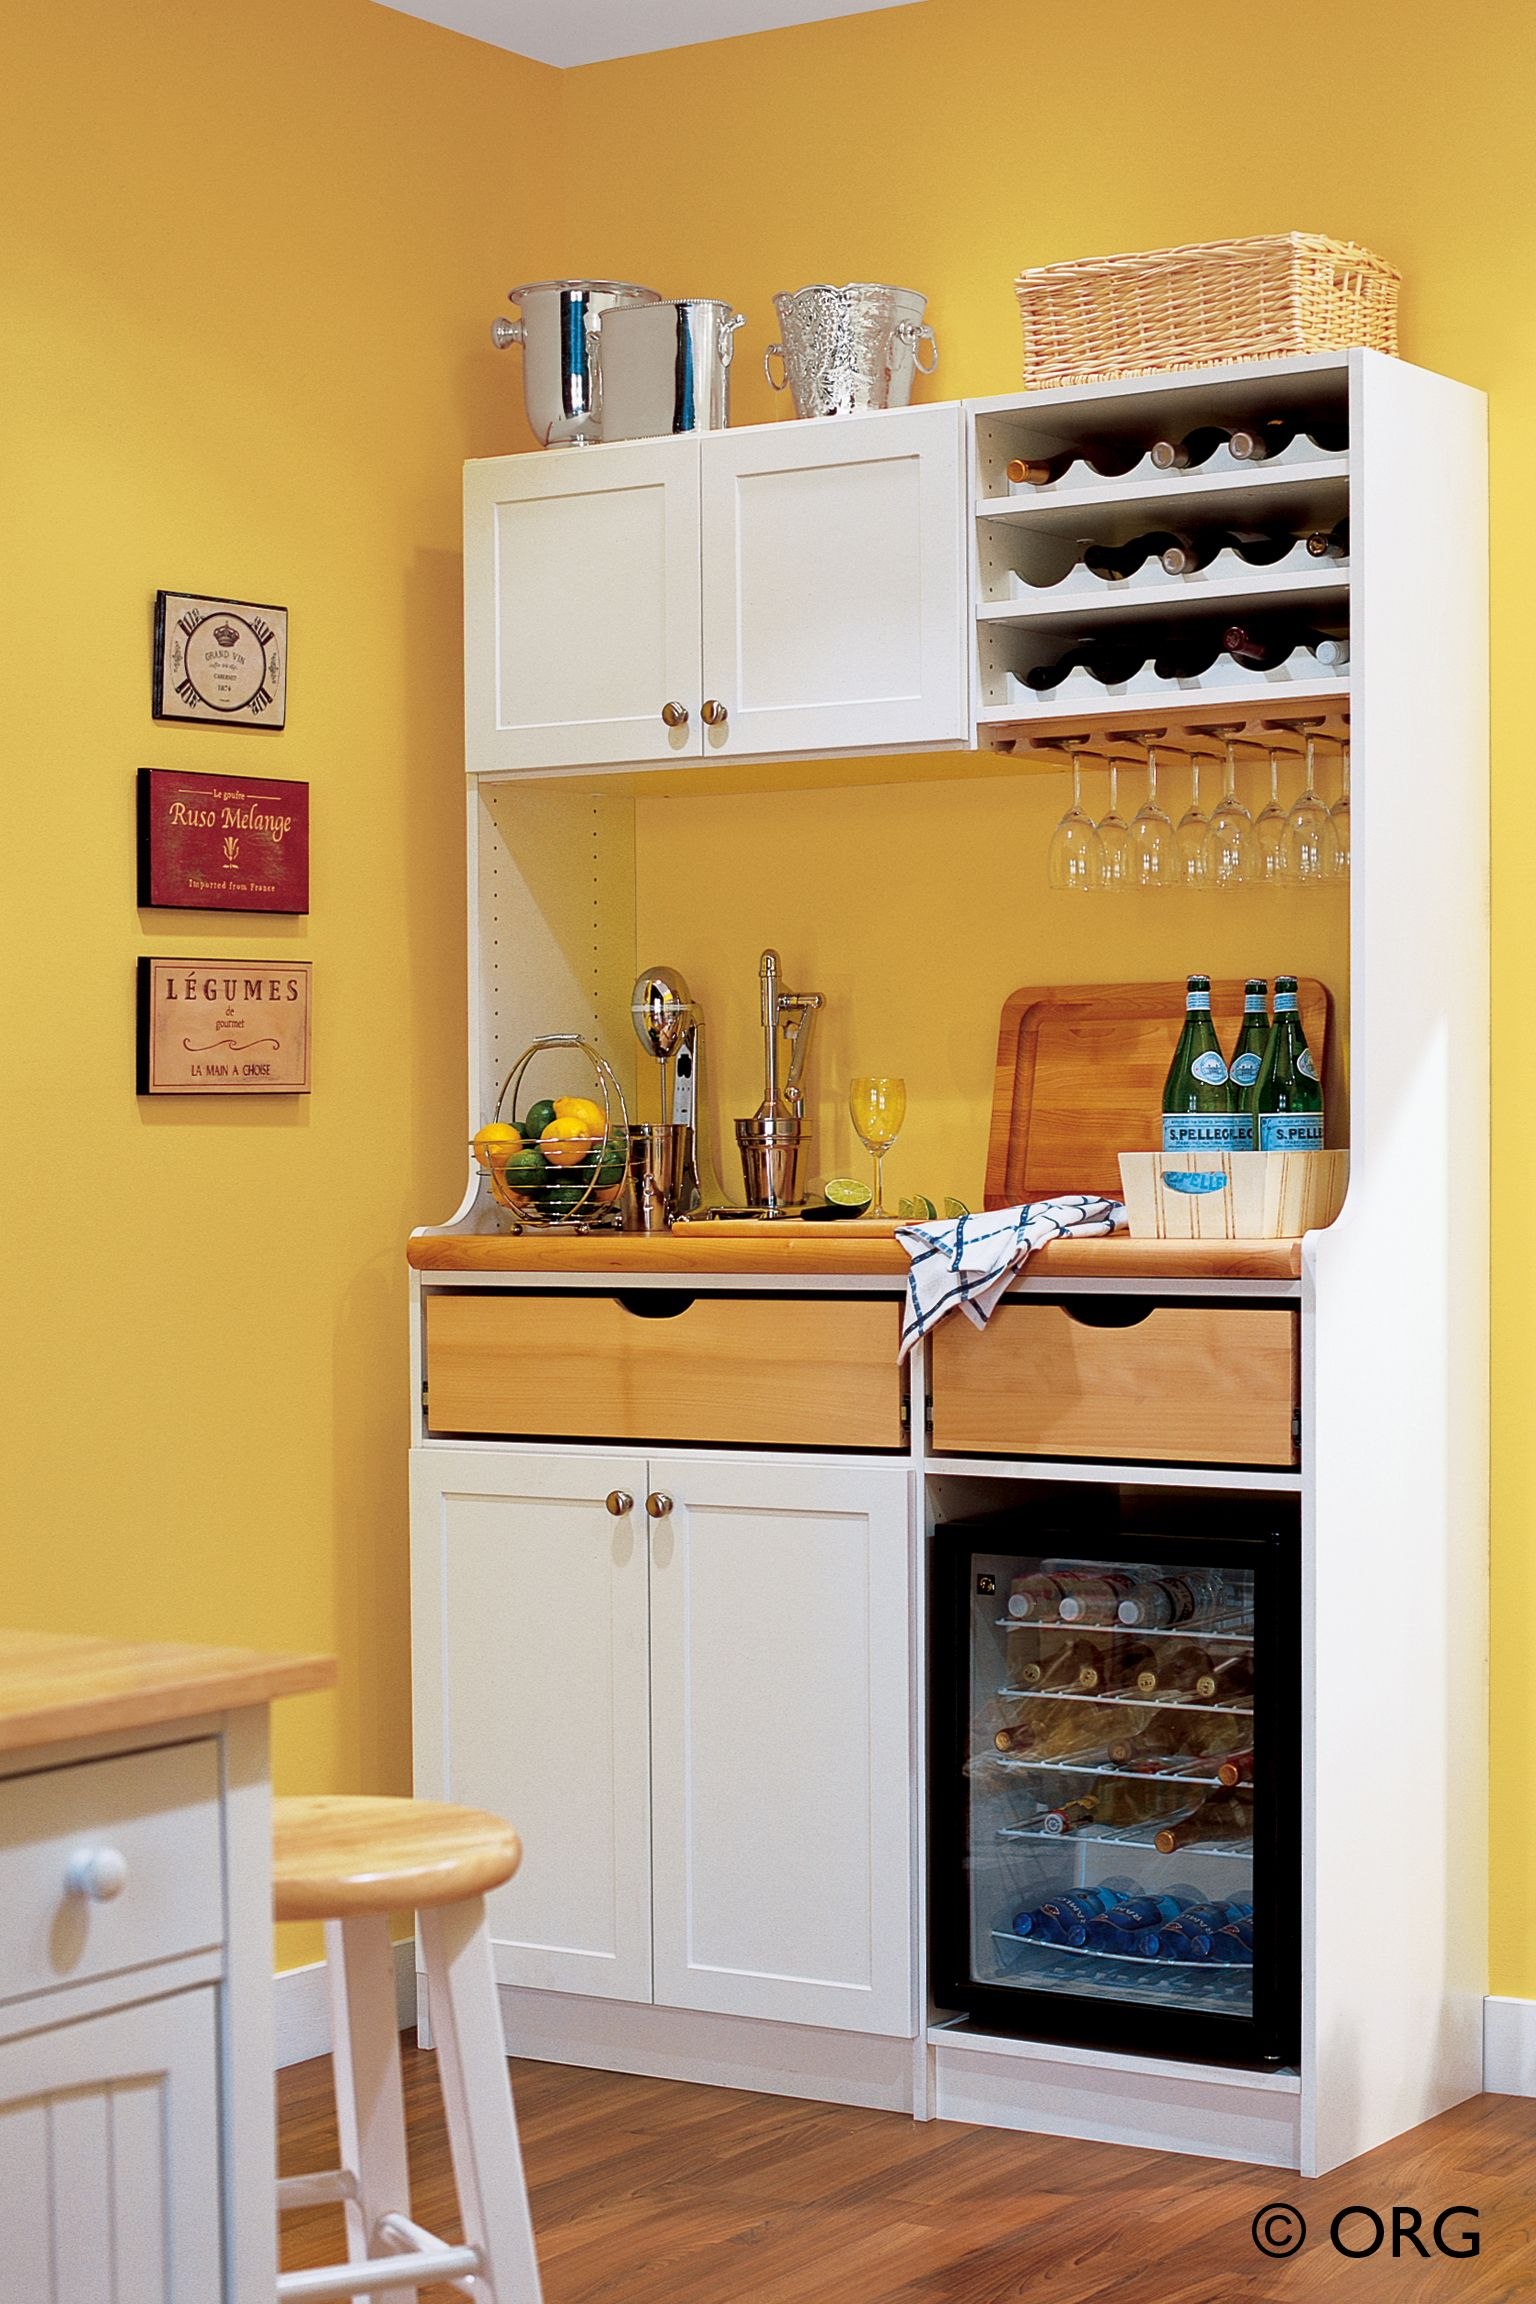 storage solutions for tiny kitchens kitchen storage solutions pantry storage c small on kitchen organization small apartment id=99641